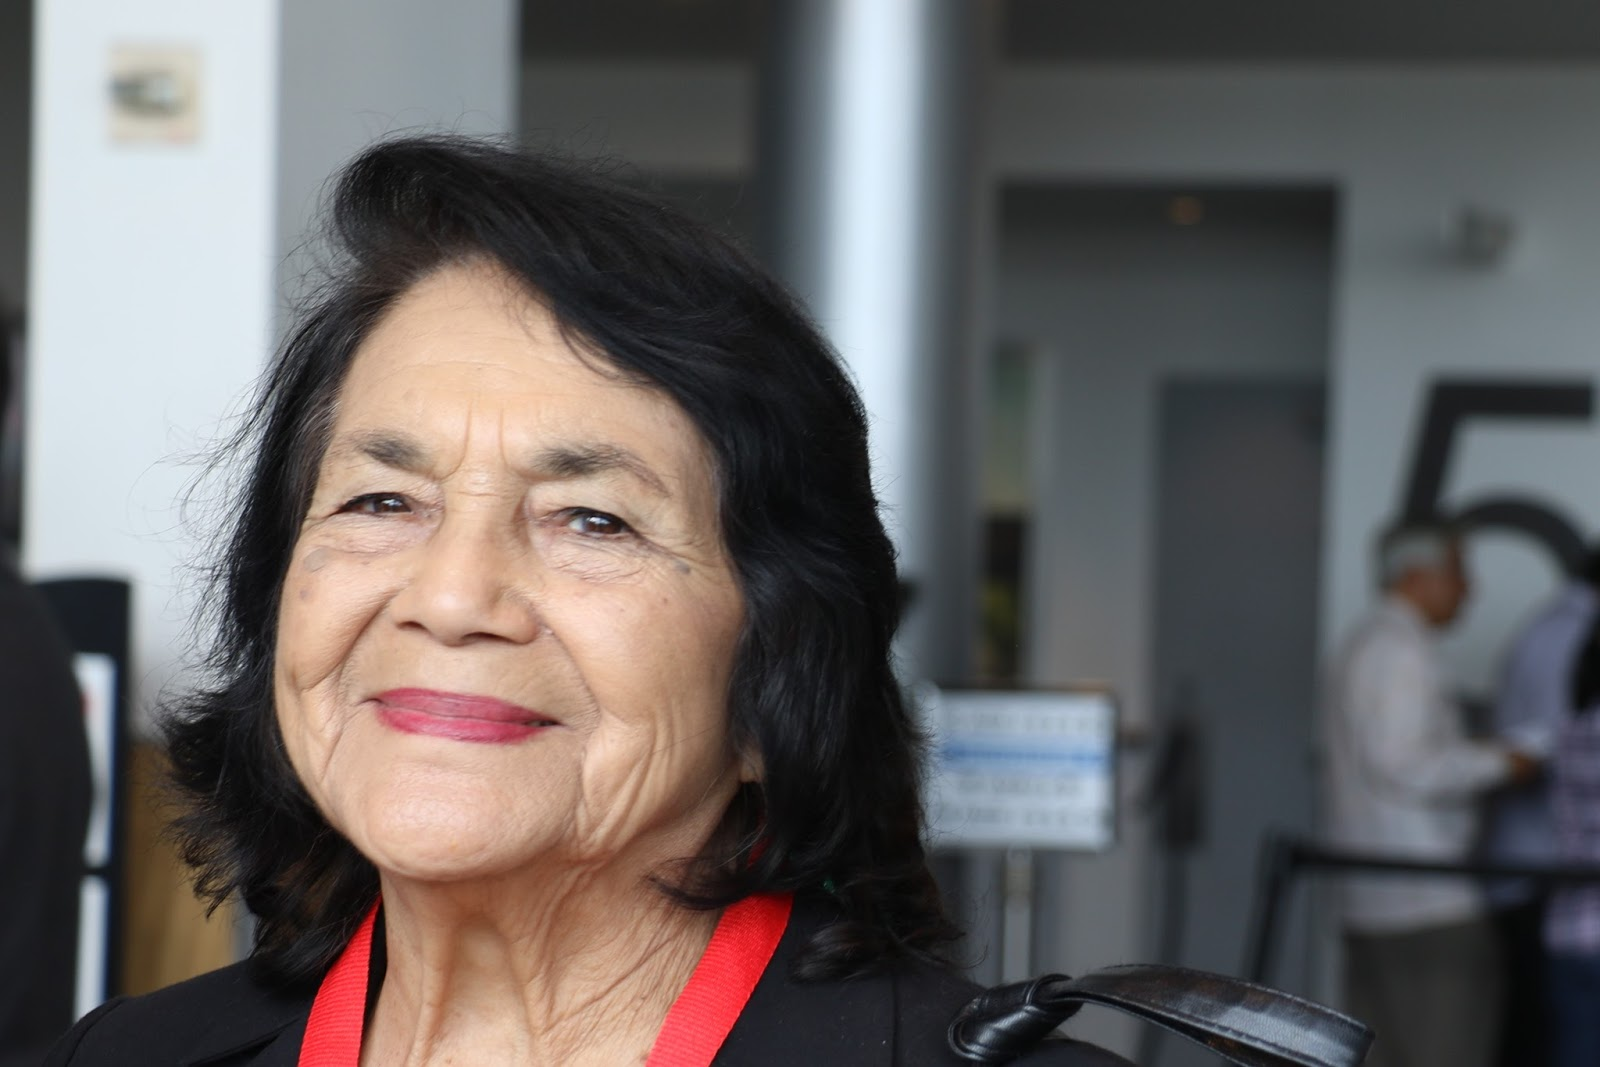 dolores huerta 06102017 the film 'dolores' celebrates the force that is dolores huerta, the labor organizer who worked tirelessly on behalf of poor people around the country.